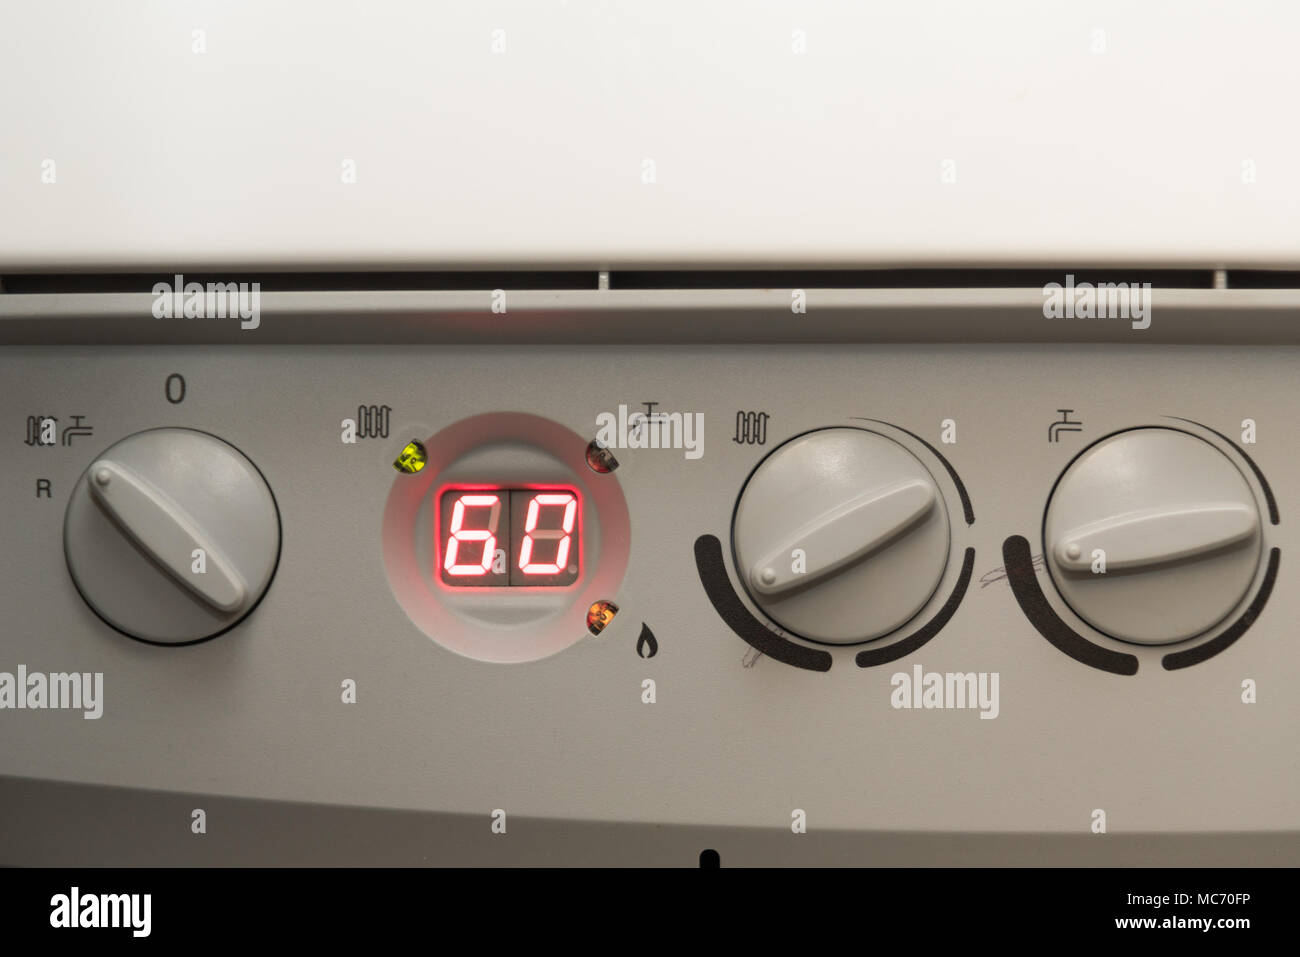 Closein Boiler Close Up Of The Controls Of A British Combi Gas Boiler Stock Photo